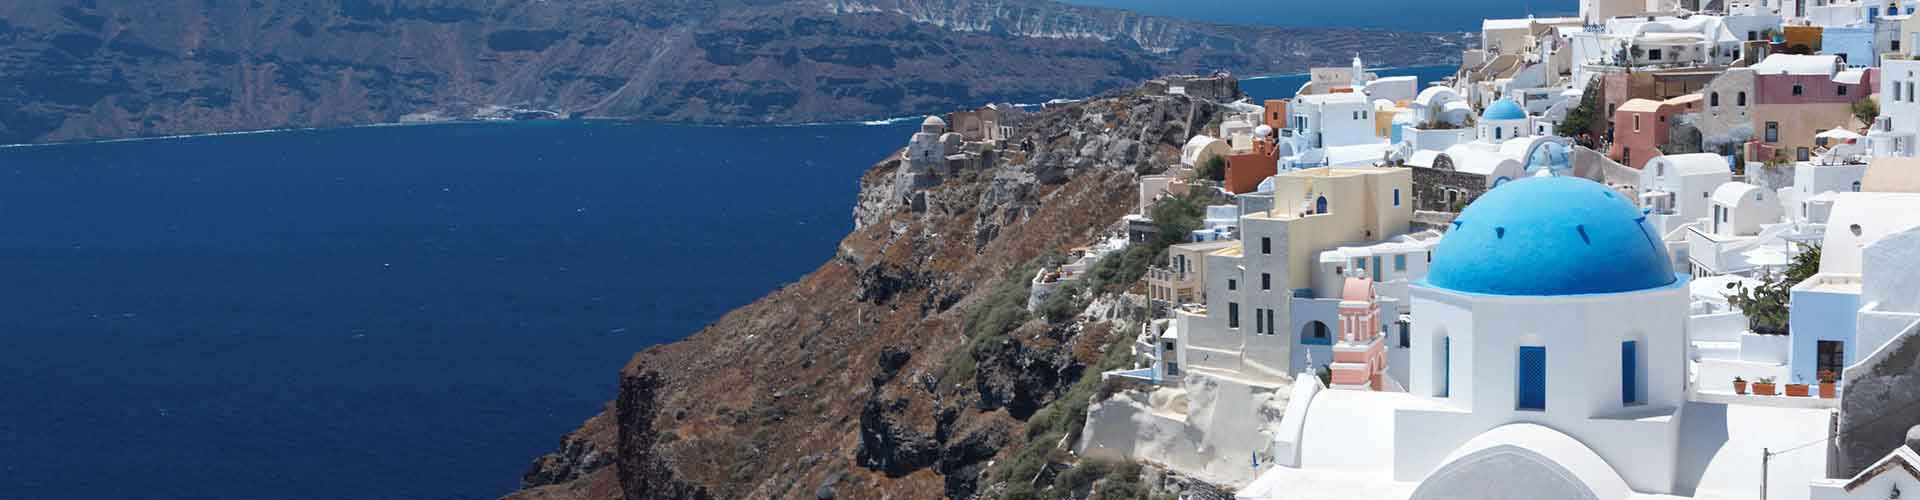 Ios Island – Hostels in Ios Island. Maps for Ios Island, Photos and Reviews for each hostel in Ios Island.